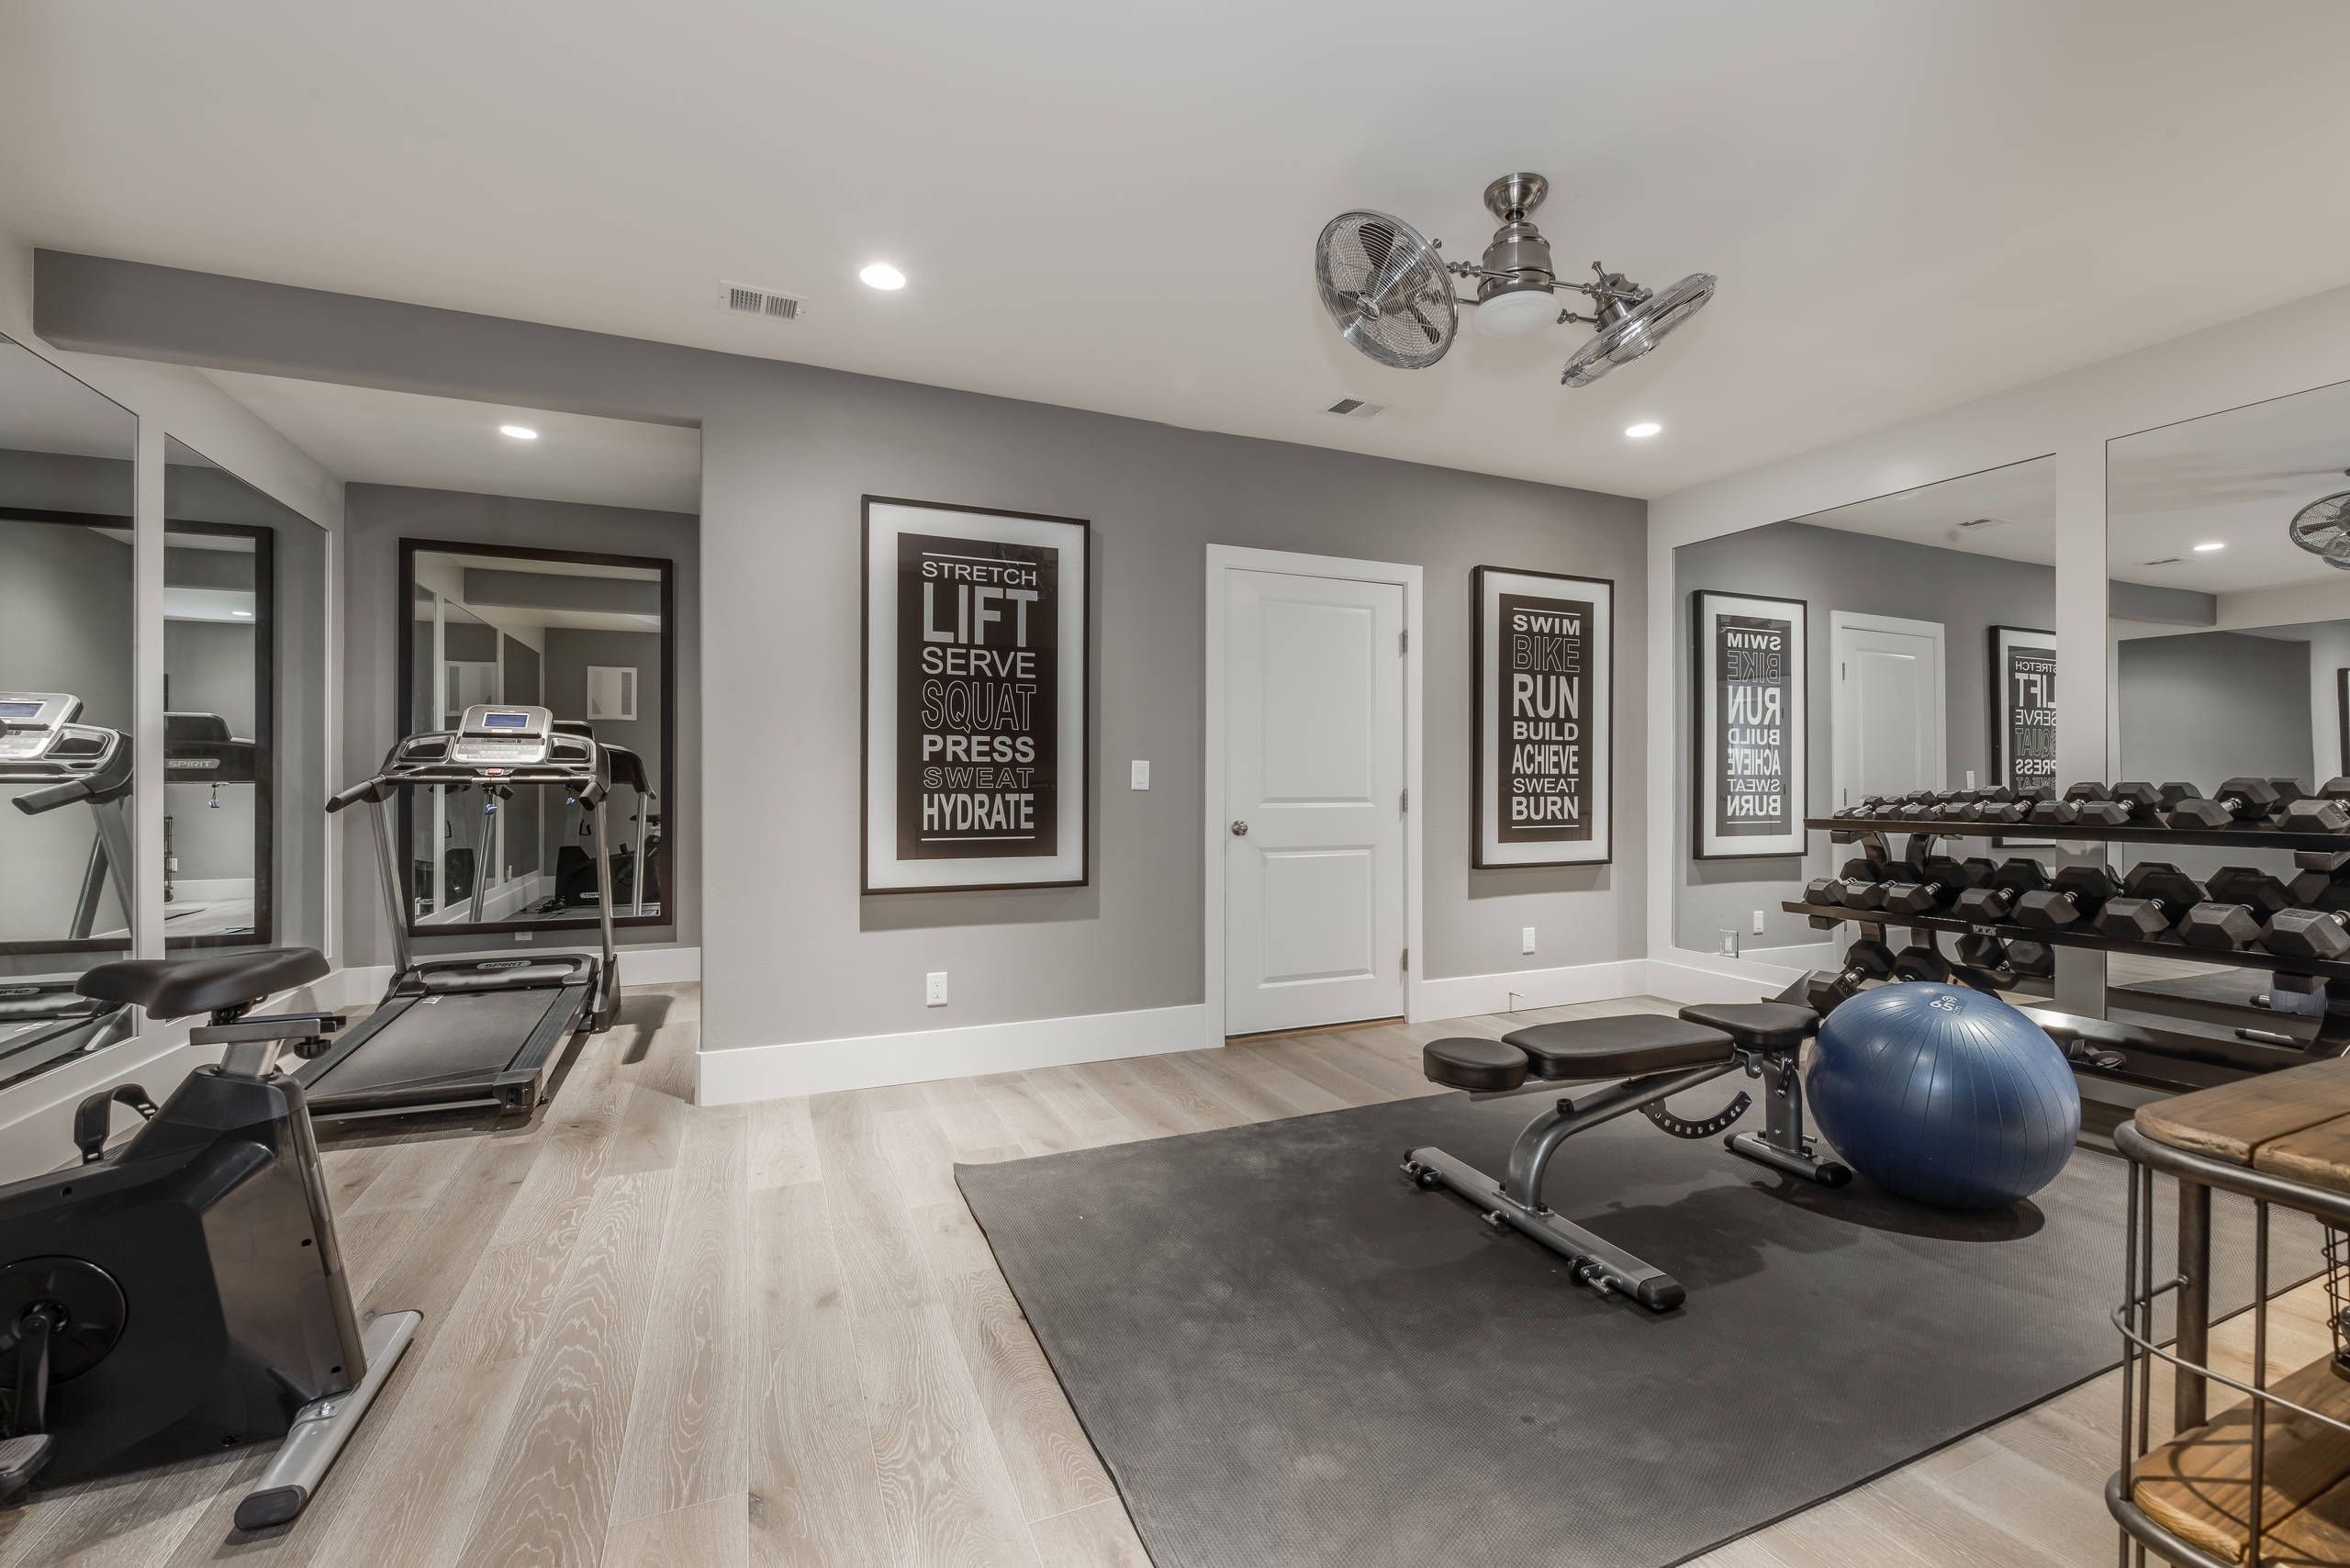 75 Beautiful Home Gym Pictures Ideas February 2021 Houzz